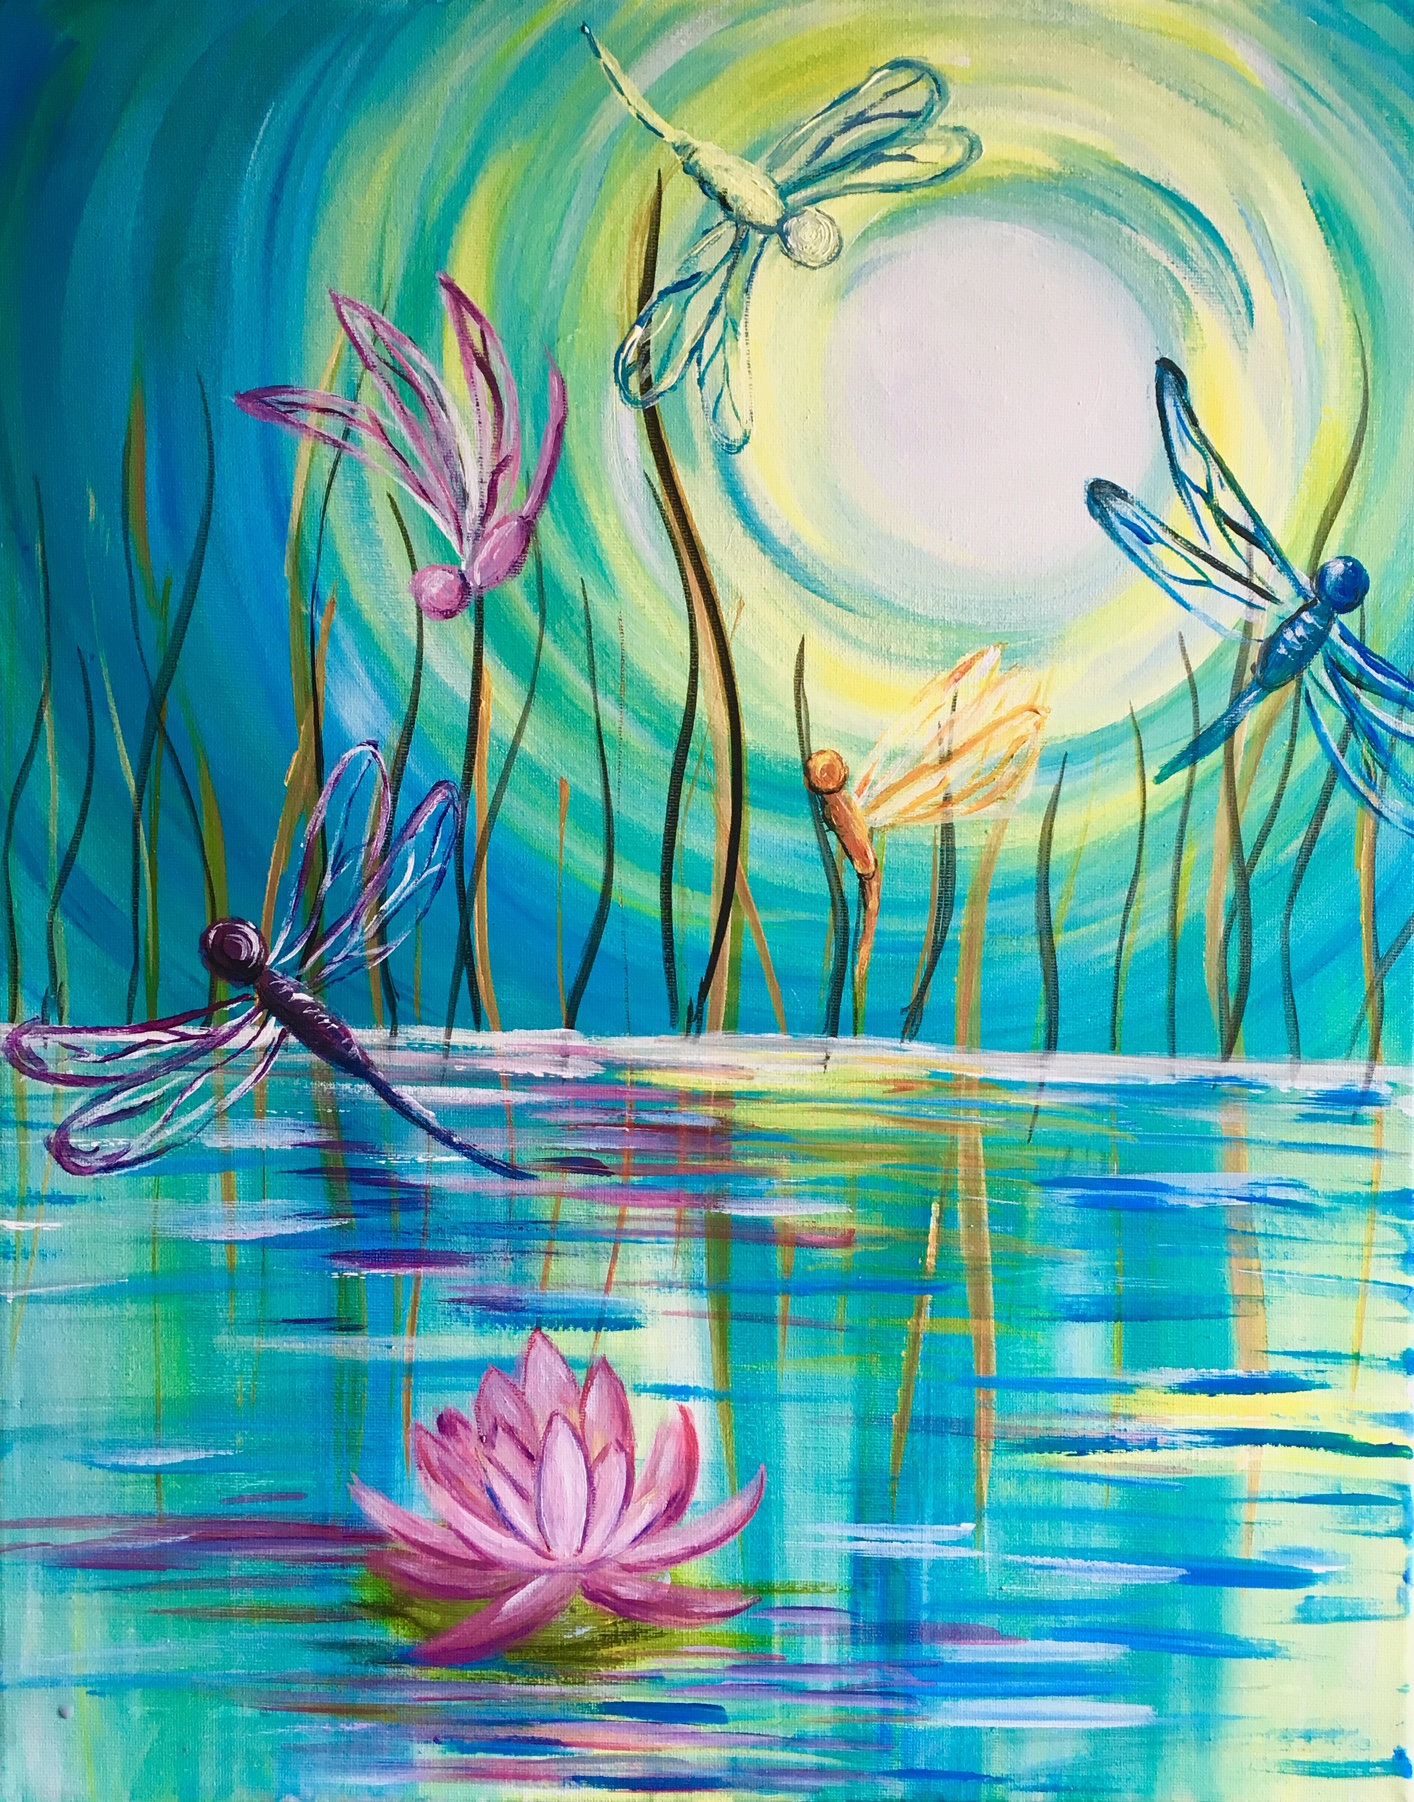 Dragonfly and Lotus Painting